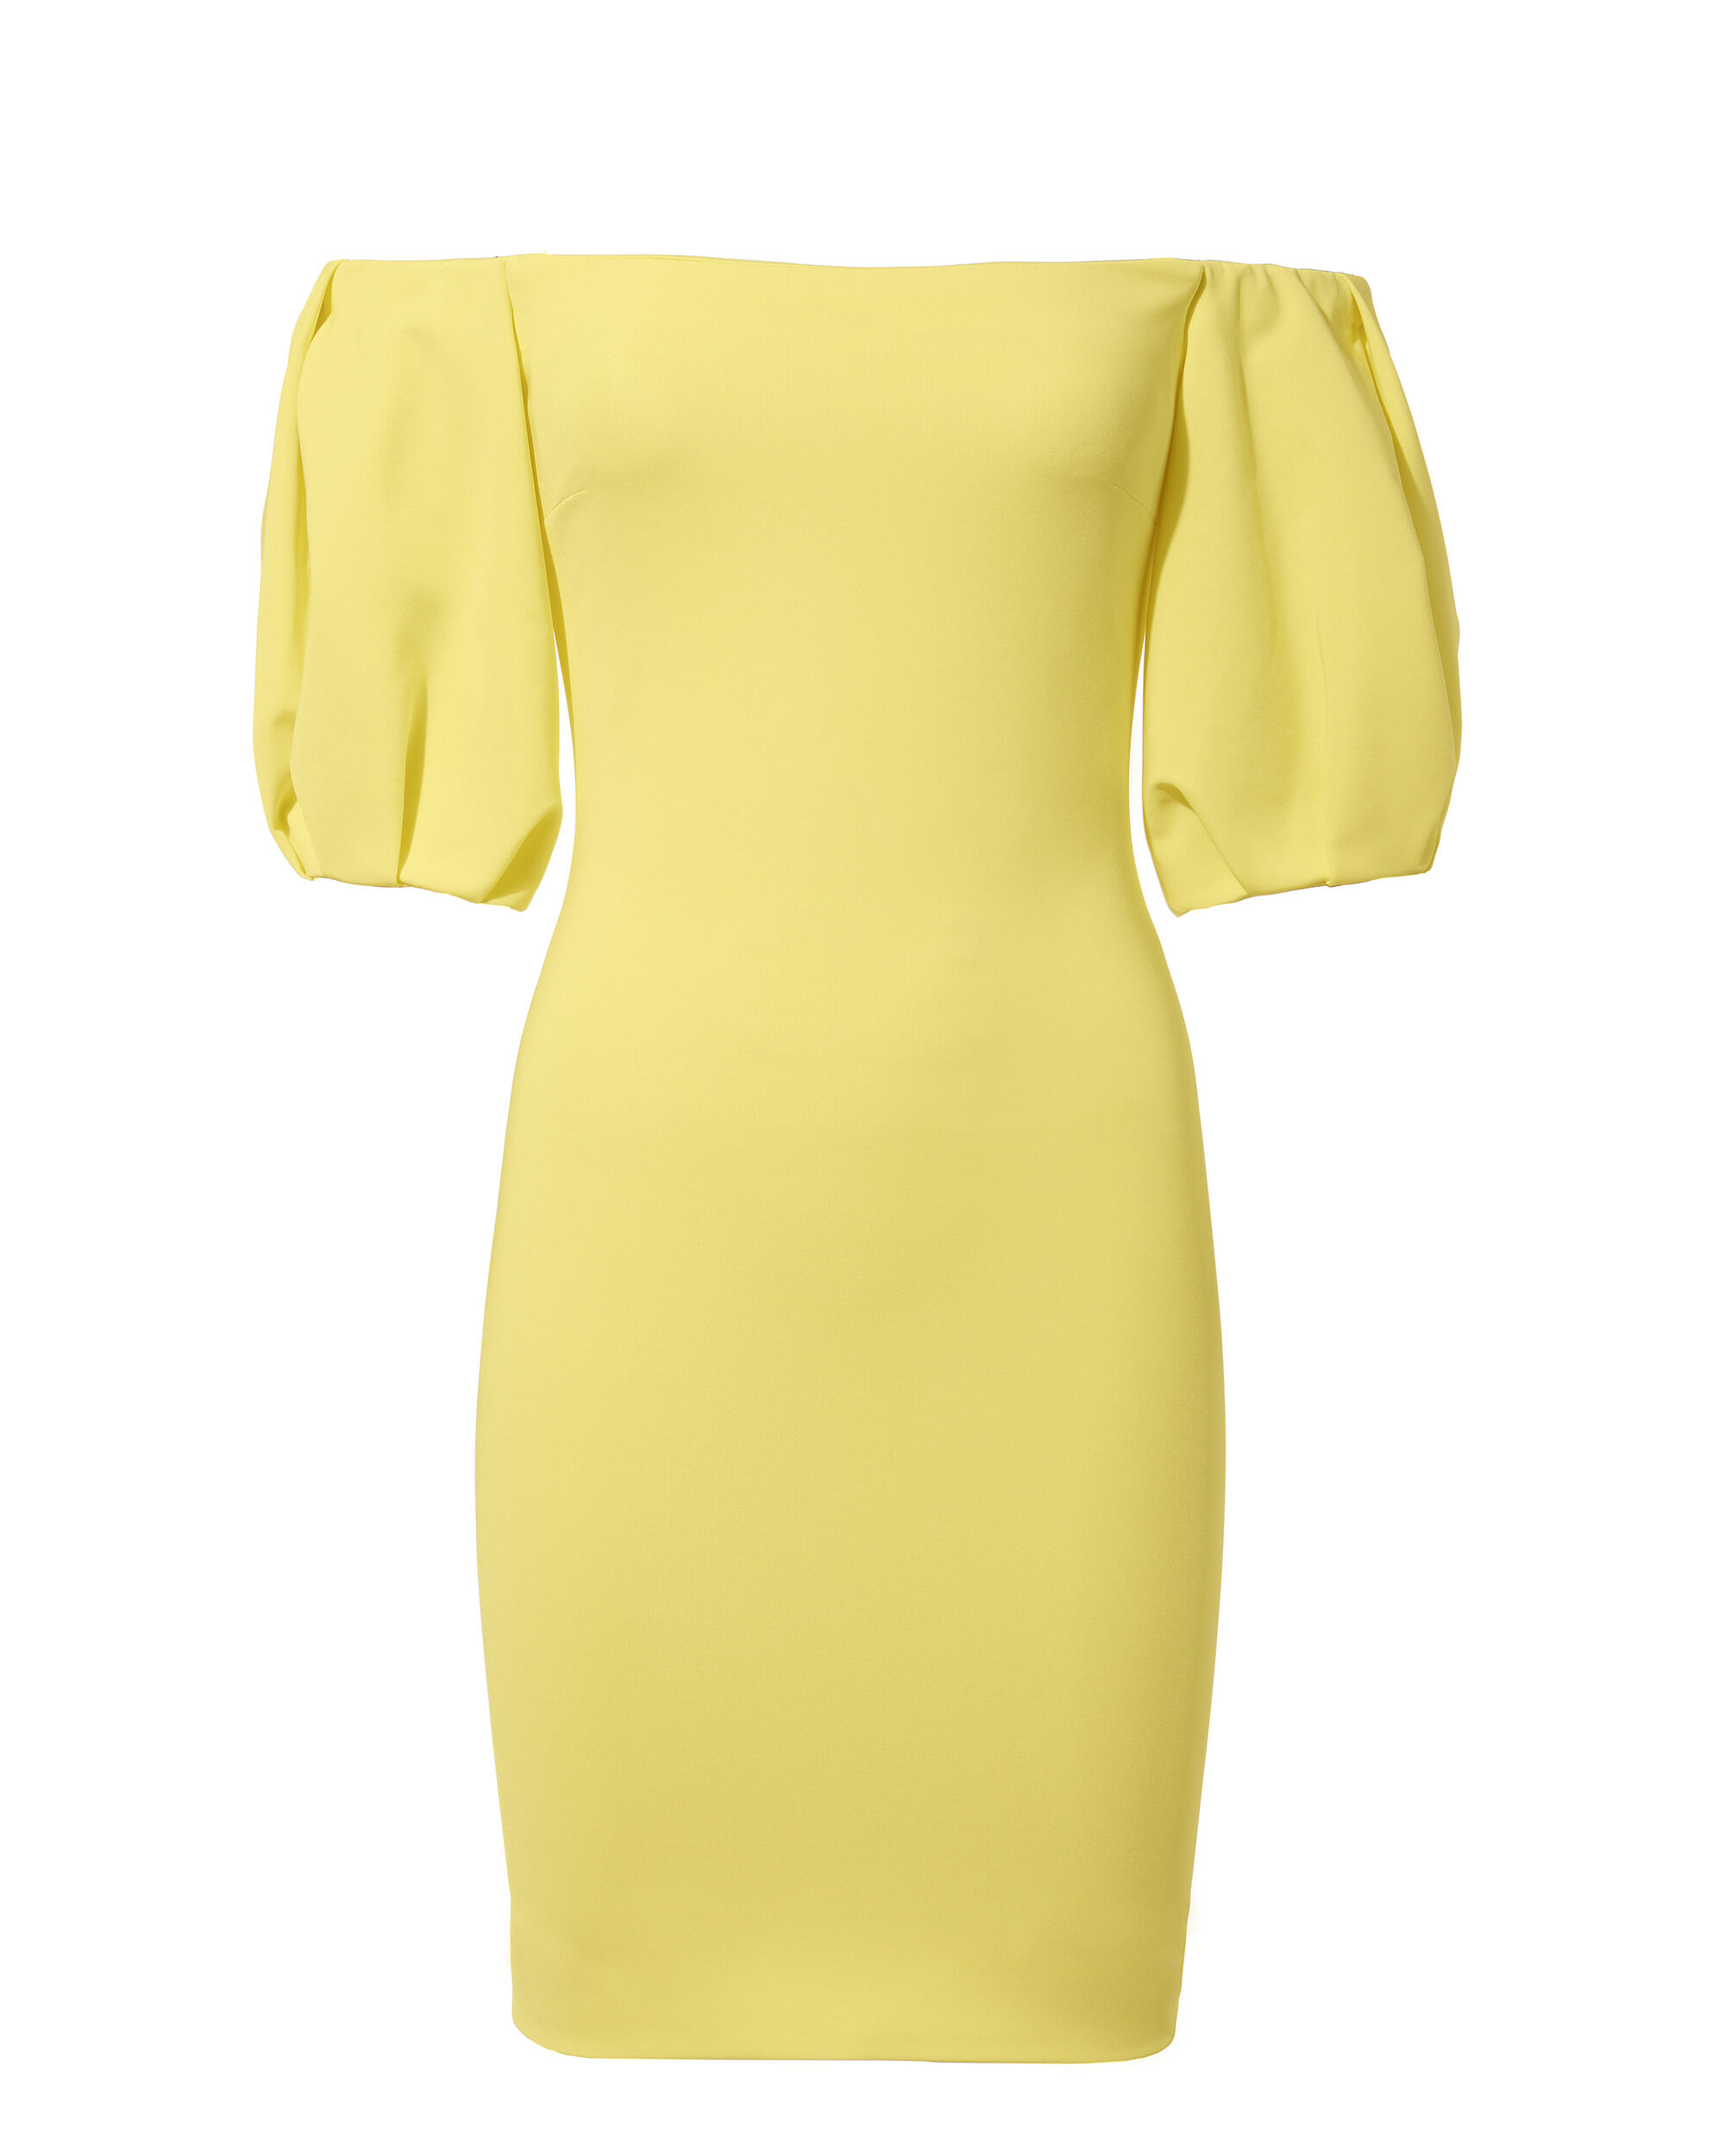 Silvia Off Shoulder Mini Dress, YELLOW, hi-res